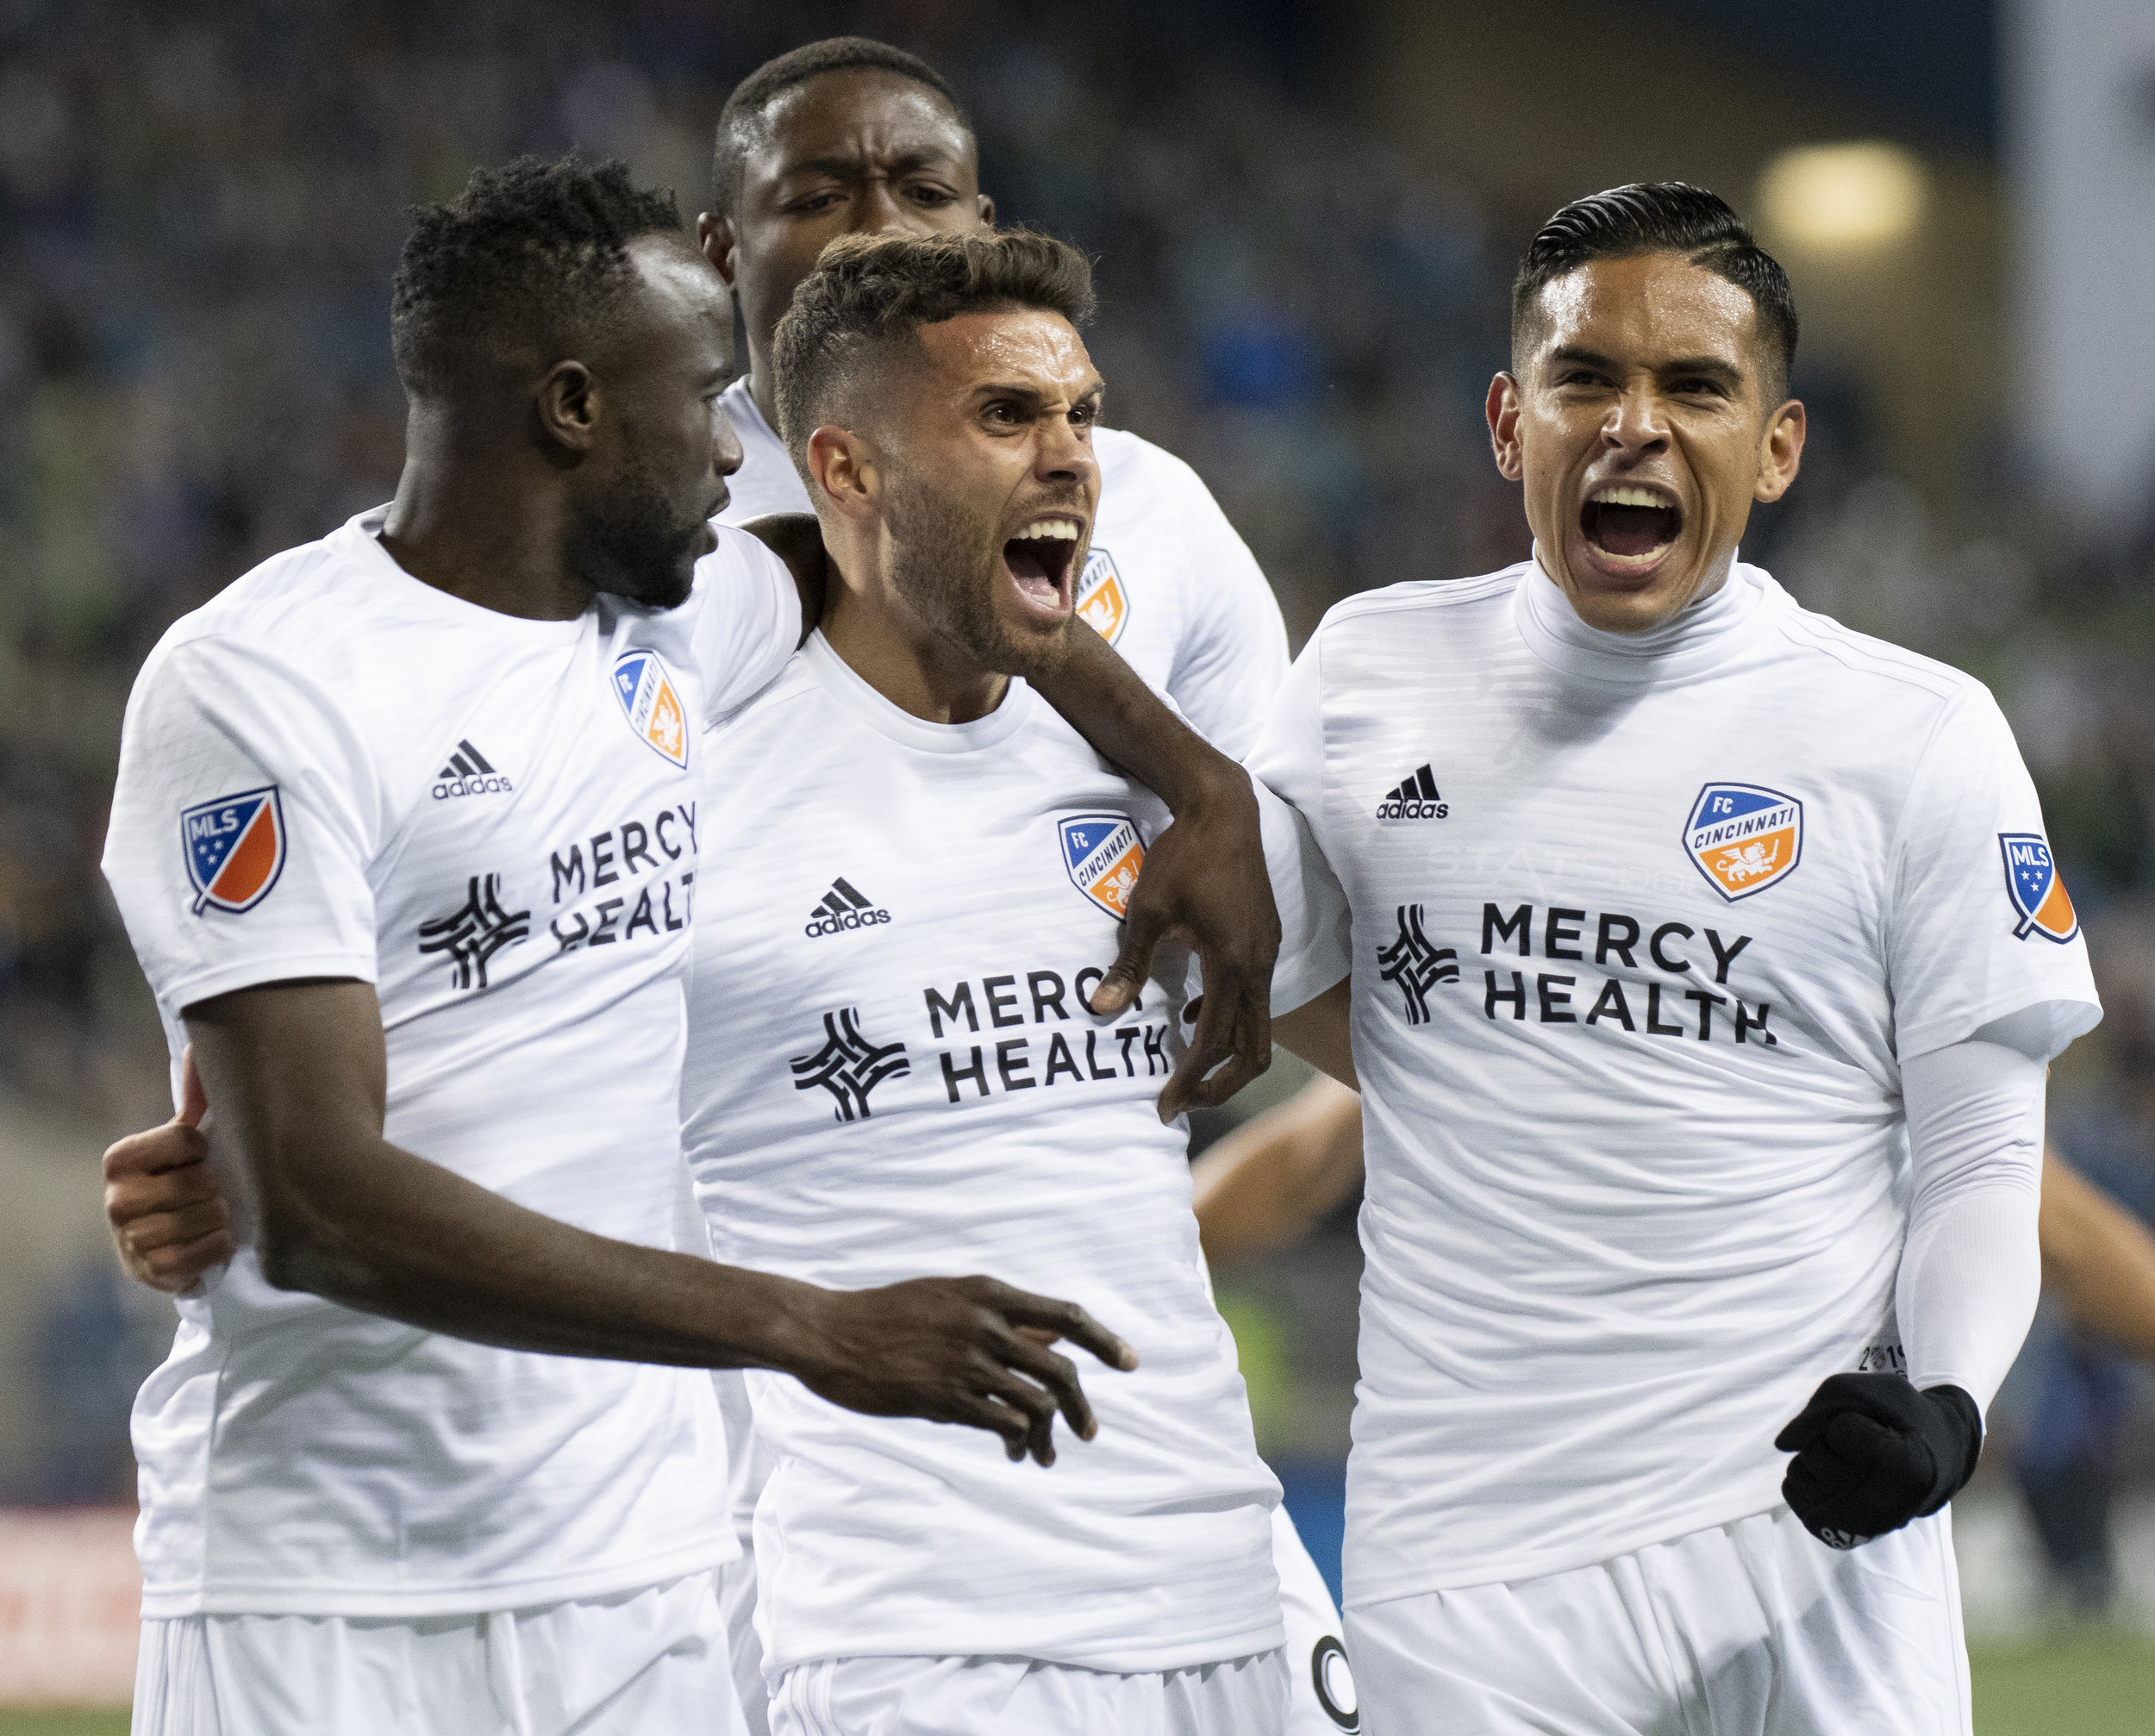 Midfielder Leonardo Bertone (6) Celebrates after scoring FC Cincinnati's first MLS goal during their match on Saturday, March 2, 2019 at CenturyLink Field in Seattle, Washington. | Photo by: Noah Riffe